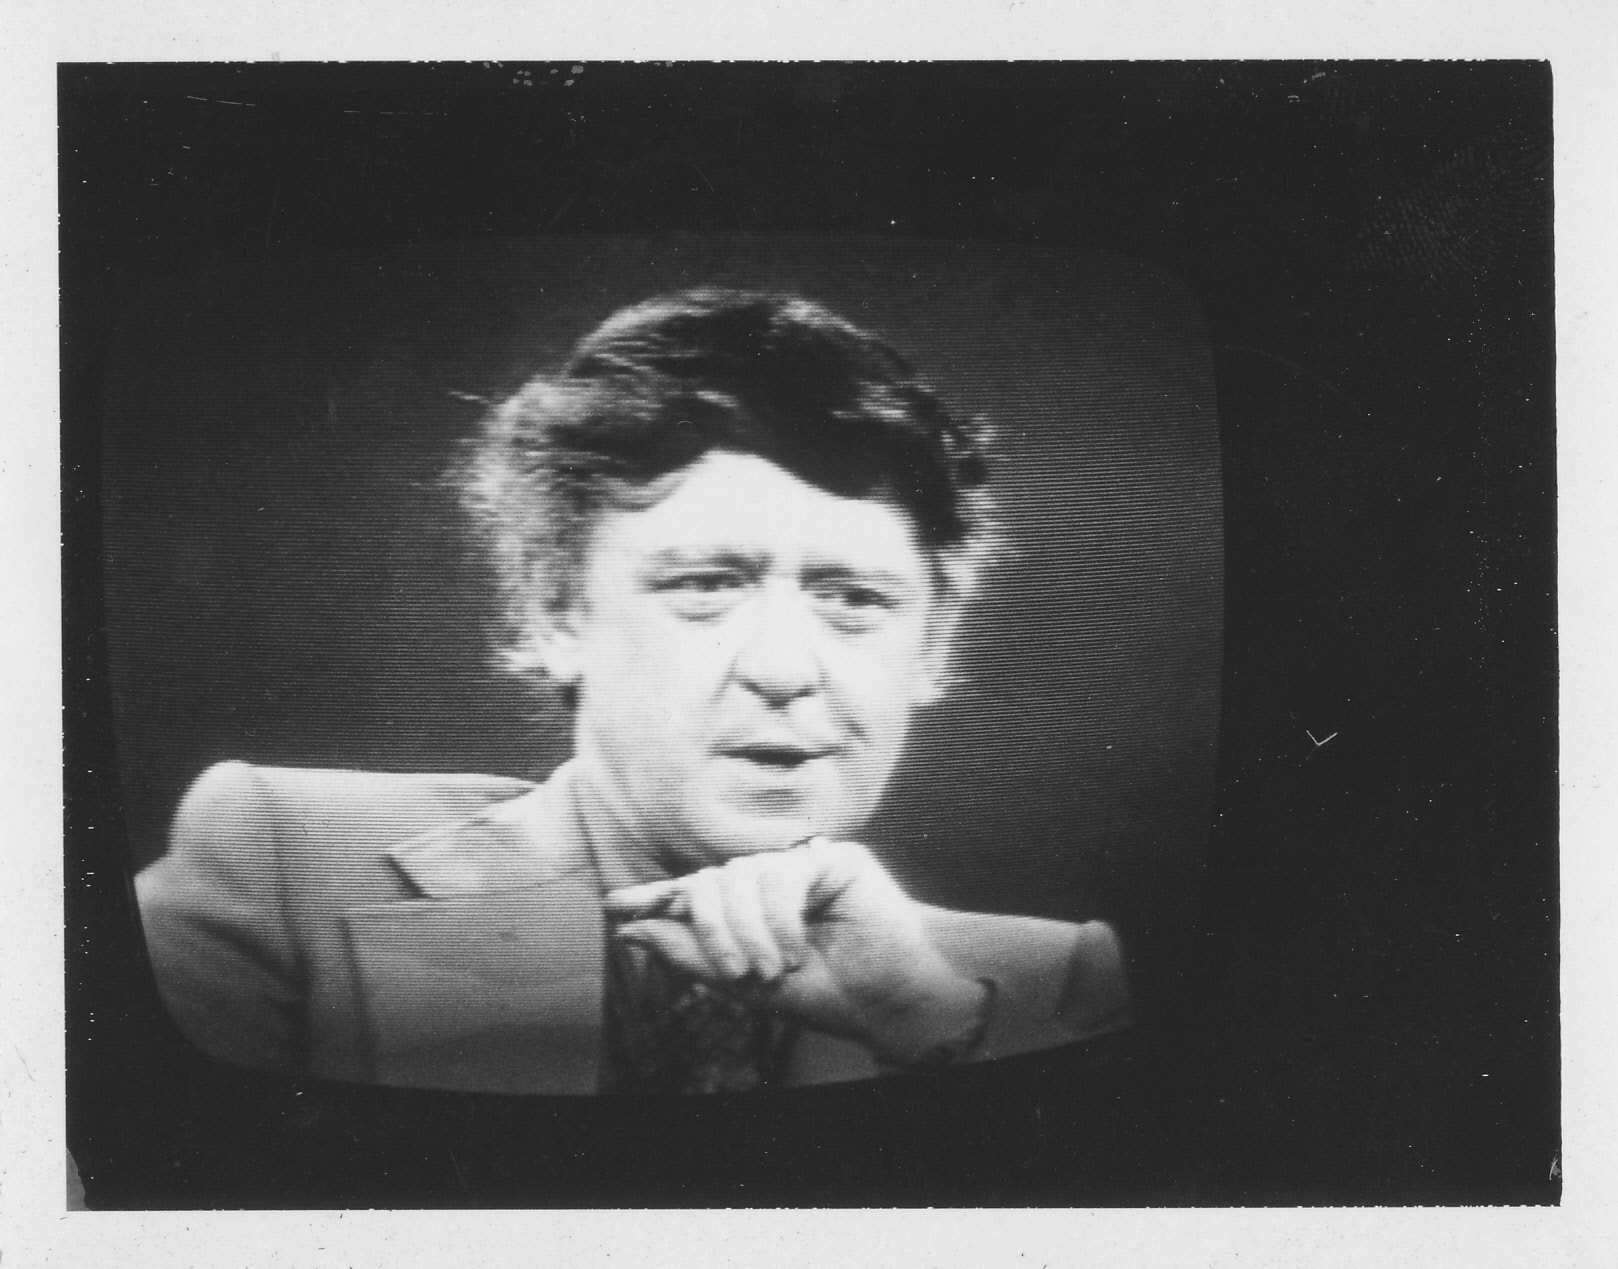 the life and works of anthony burgess Anthony burgess was an english novelist and composer known for his  the  dystopian novel became his most famous work, largely due to.